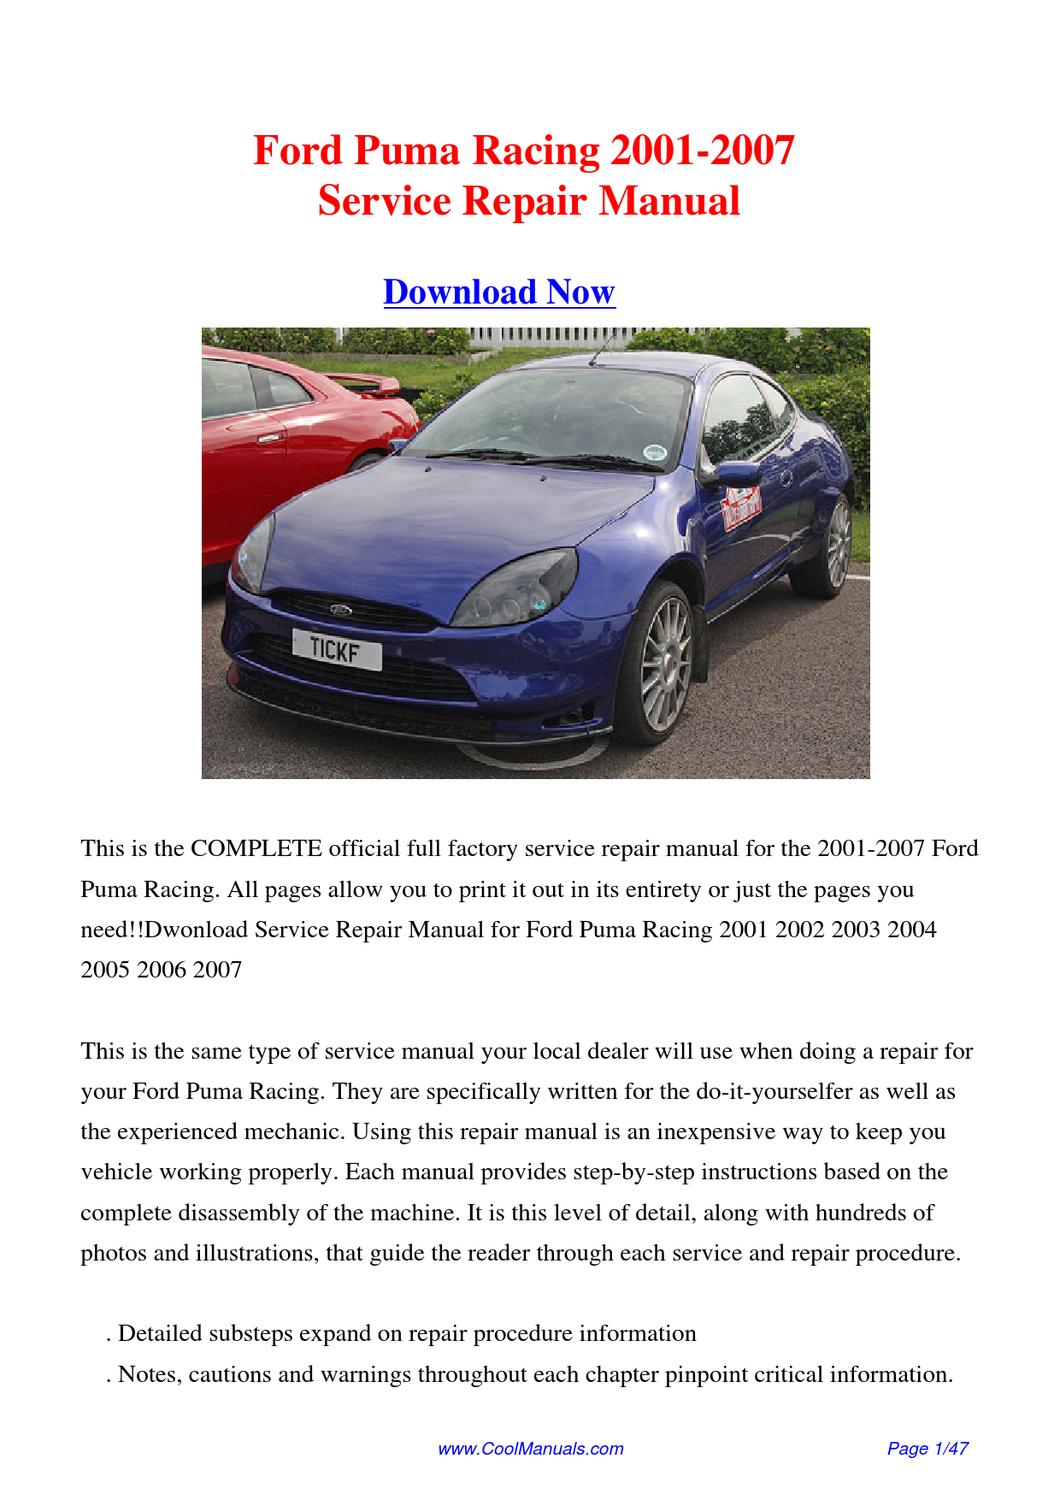 ford puma service manual free download